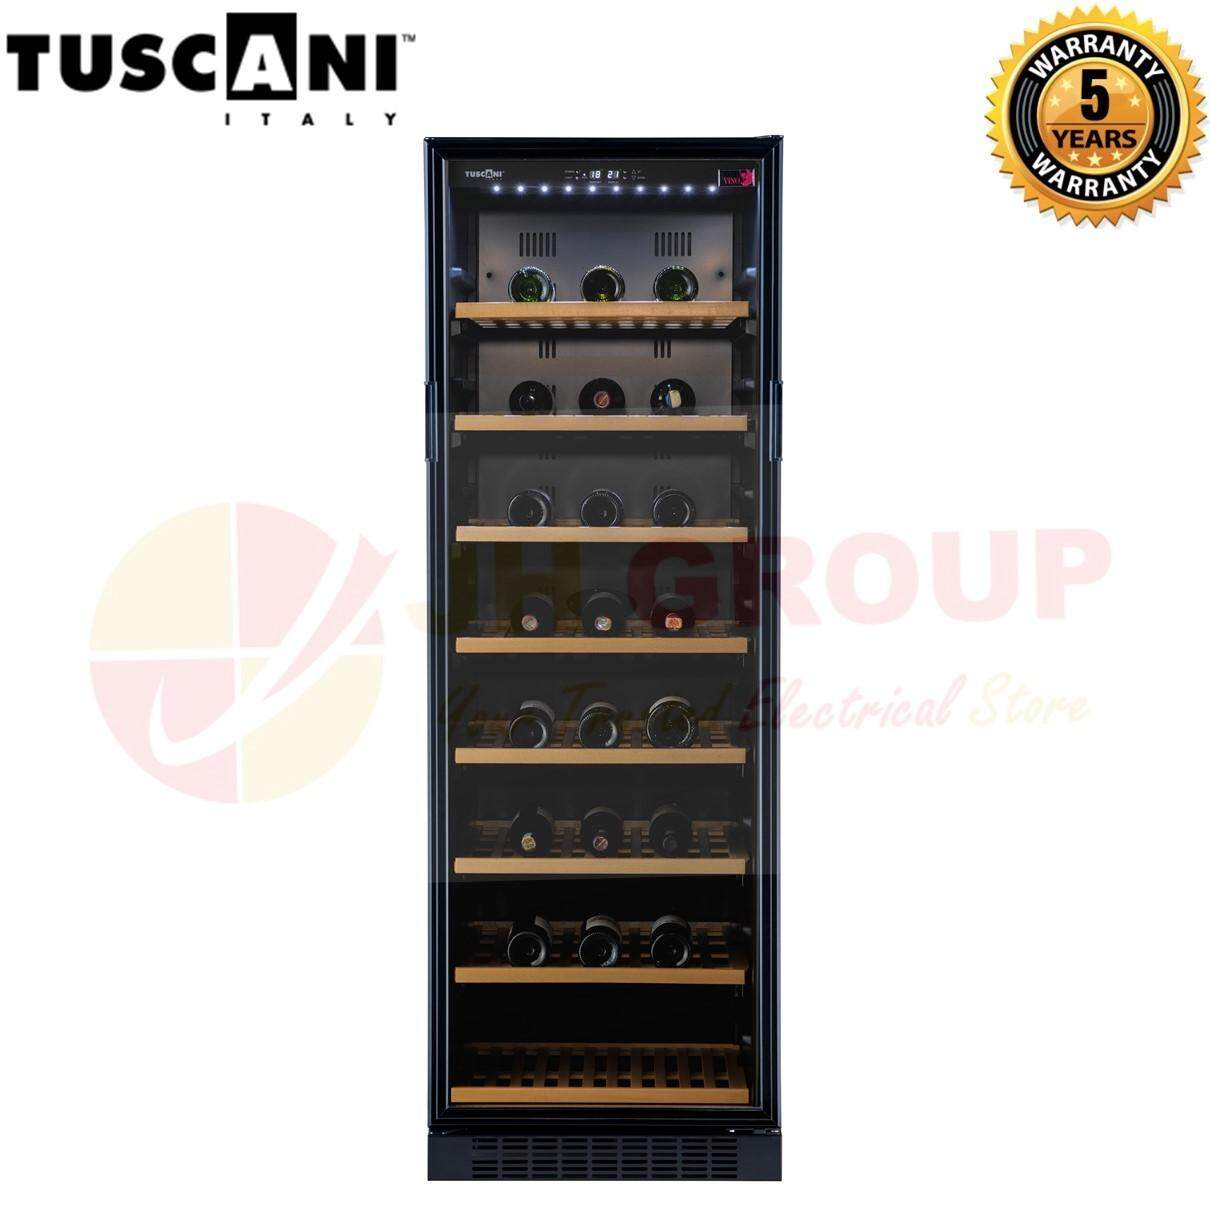 Tuscani Italy Tsc Bellona 166 424l Wine Cellar ( 151 Bottles ) Wine Chiller Wine Cooler Wine Cabinet Wine Fridge By Jh Ecommerce.